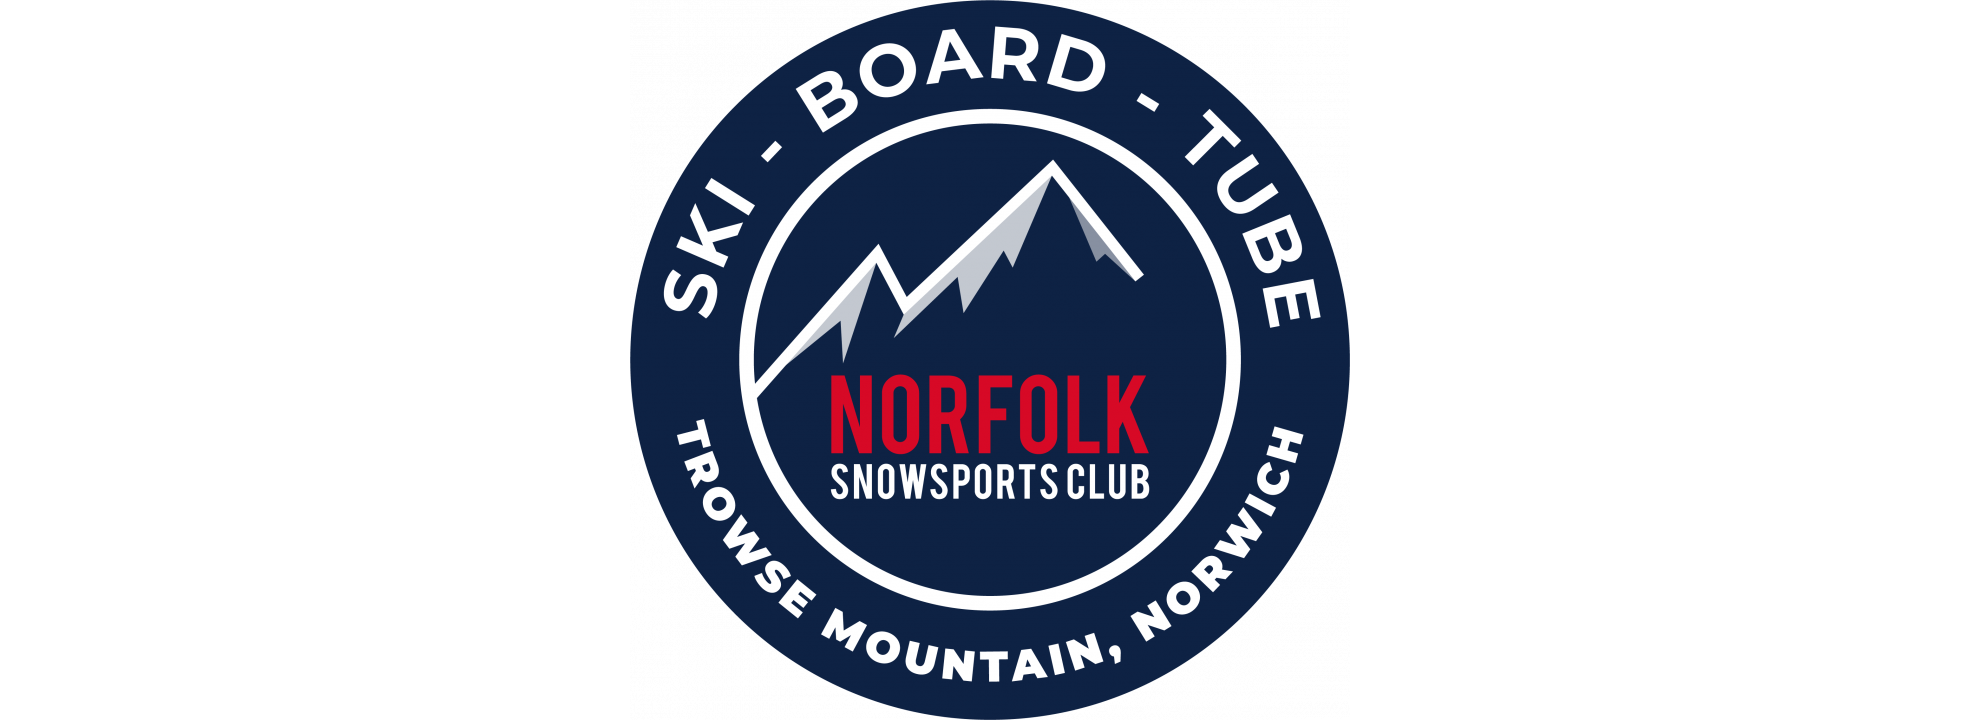 Special Olympics Norfolk Alpine Skiing Banner